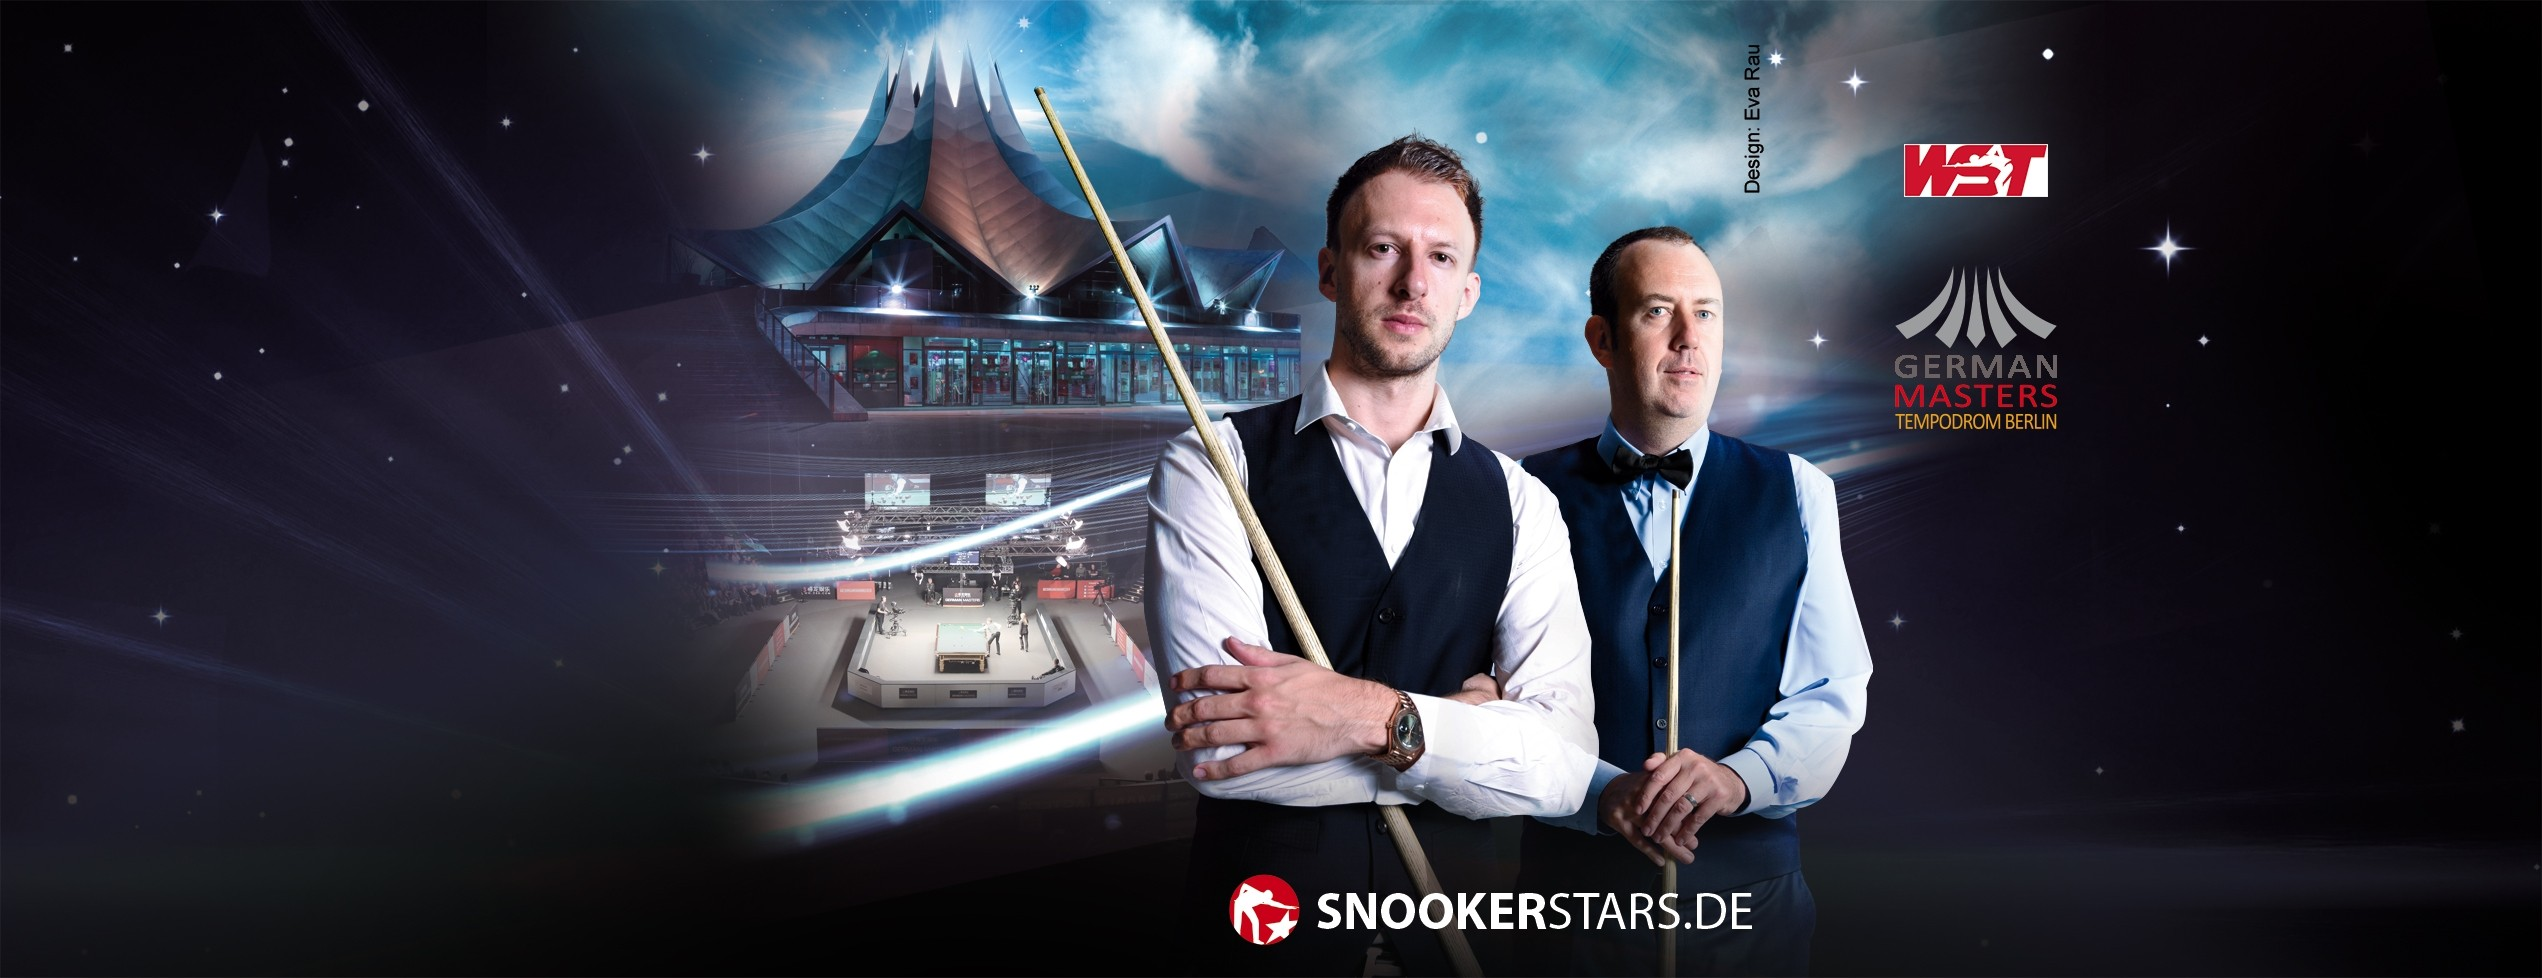 German Masters 30.01.2022 KAT 1 alle 2 Sessions